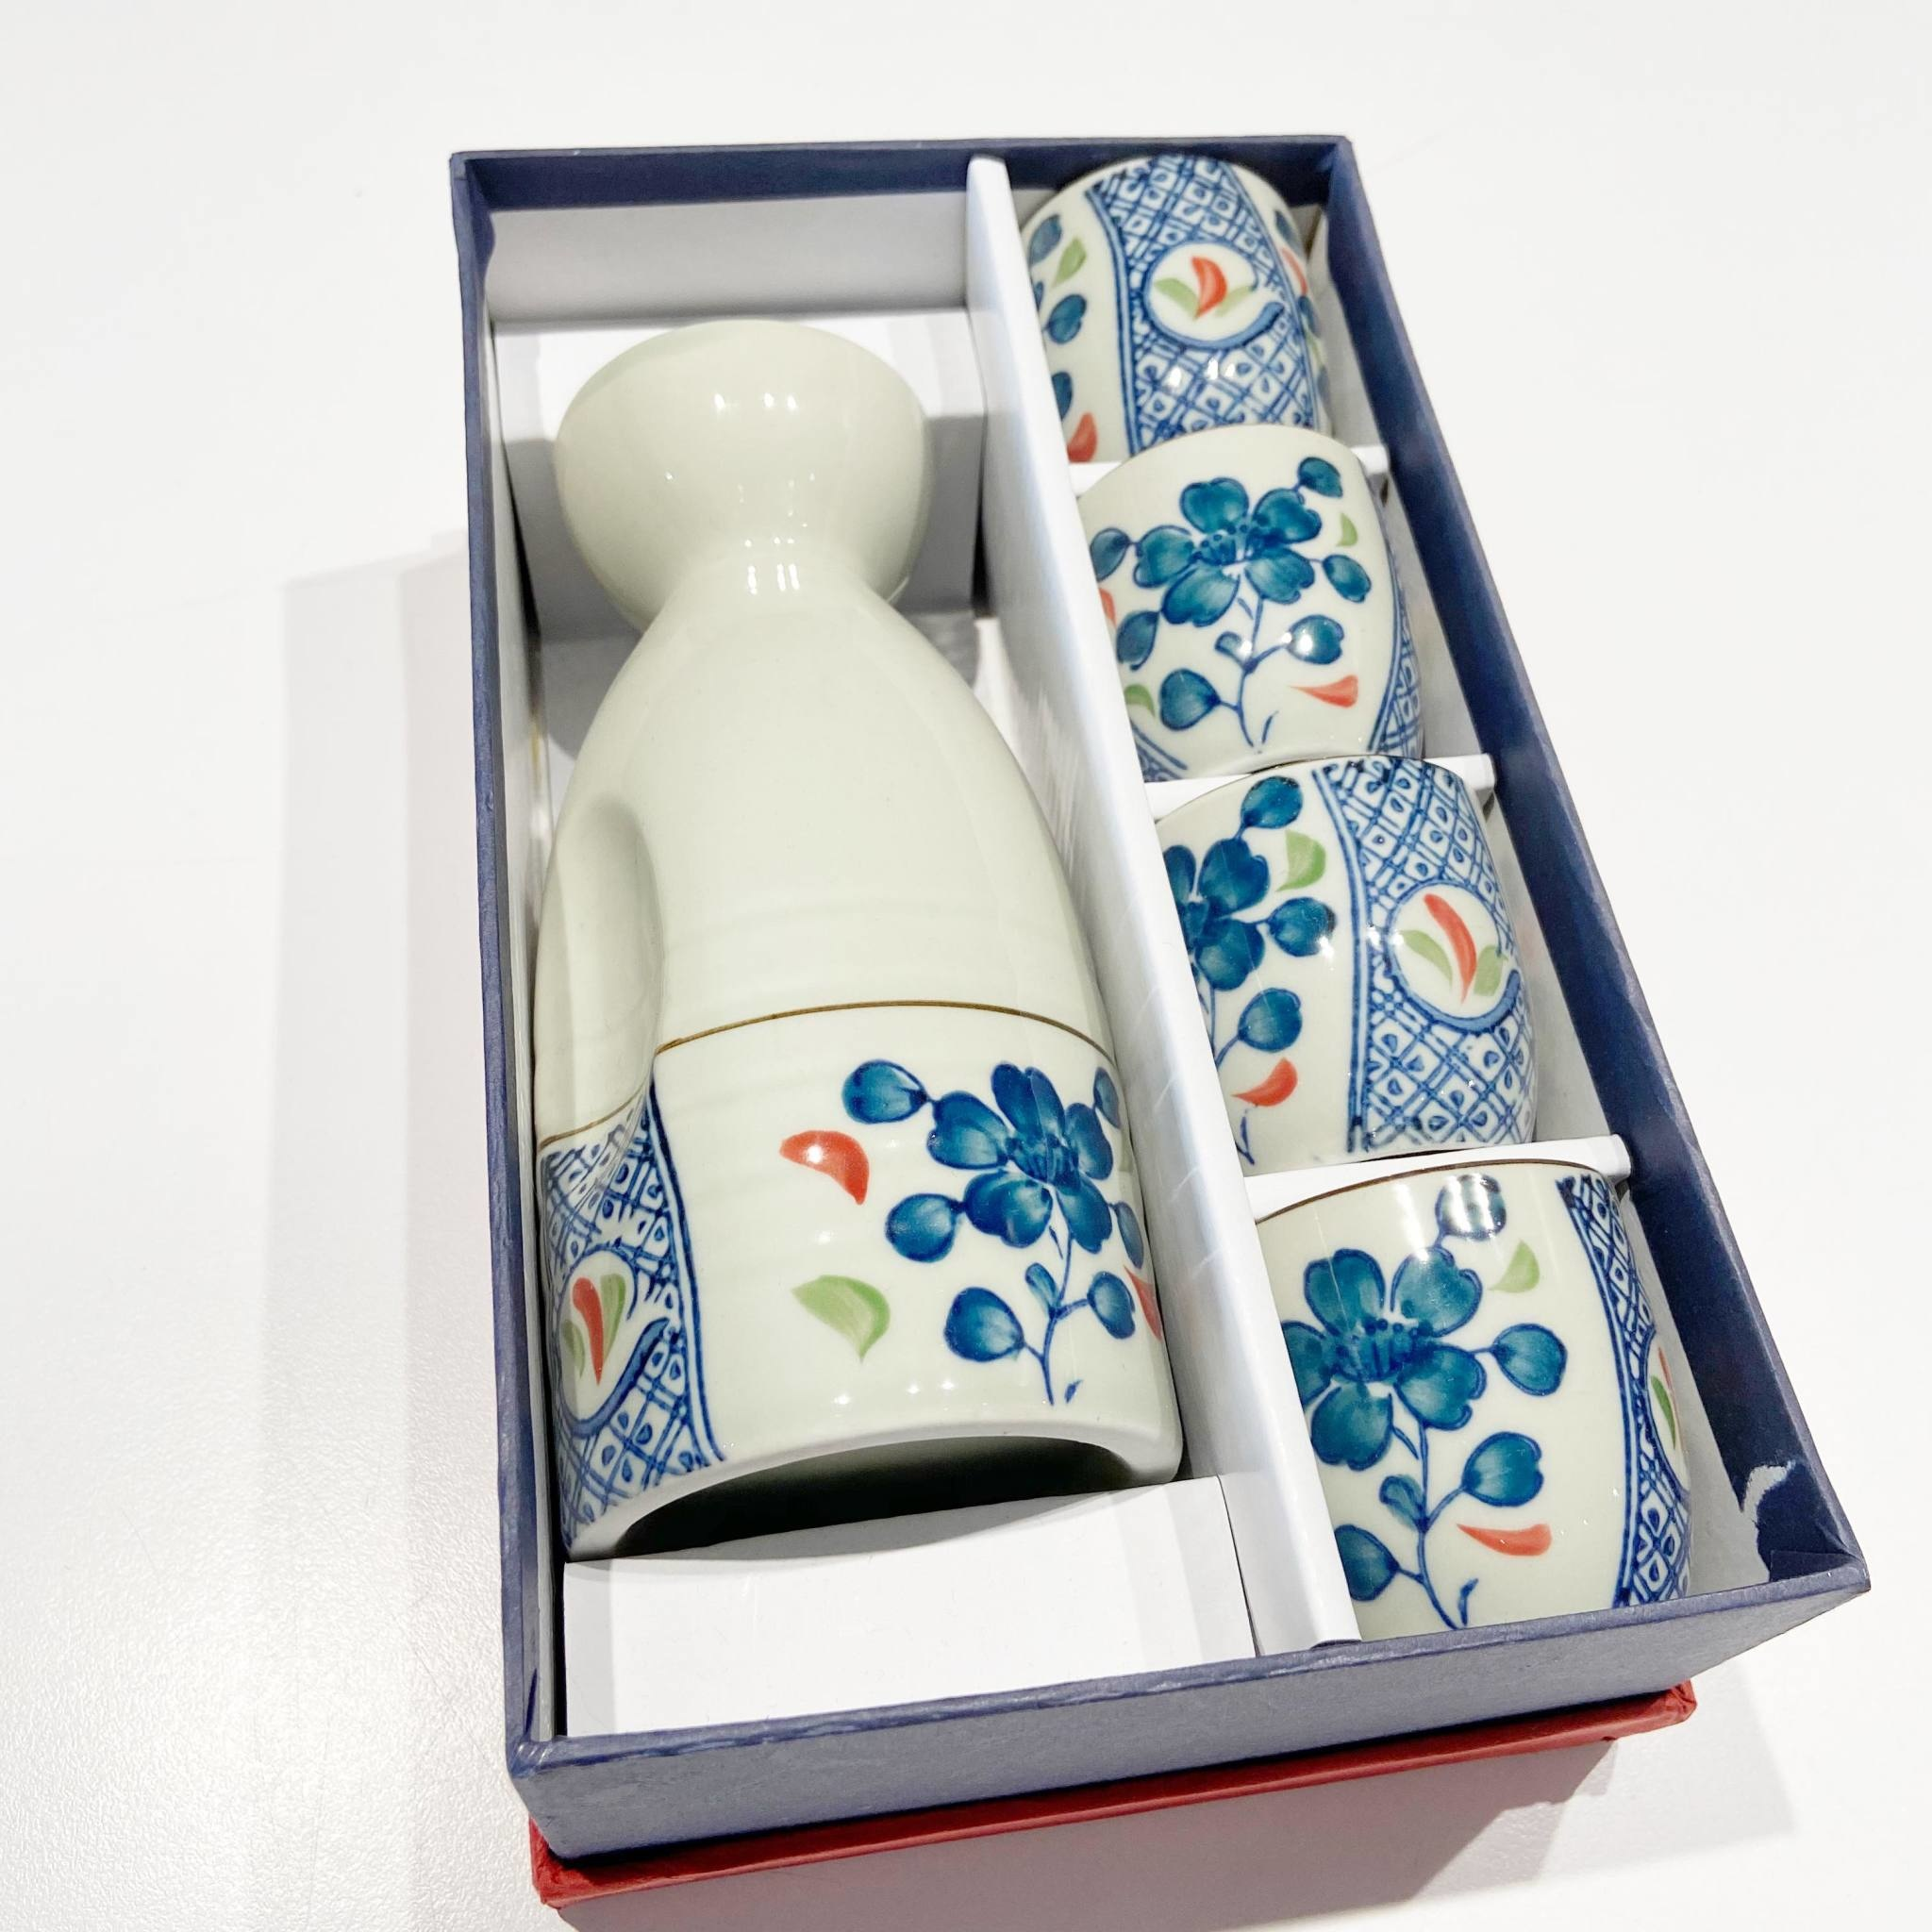 Blue Tree Chili Sake Set